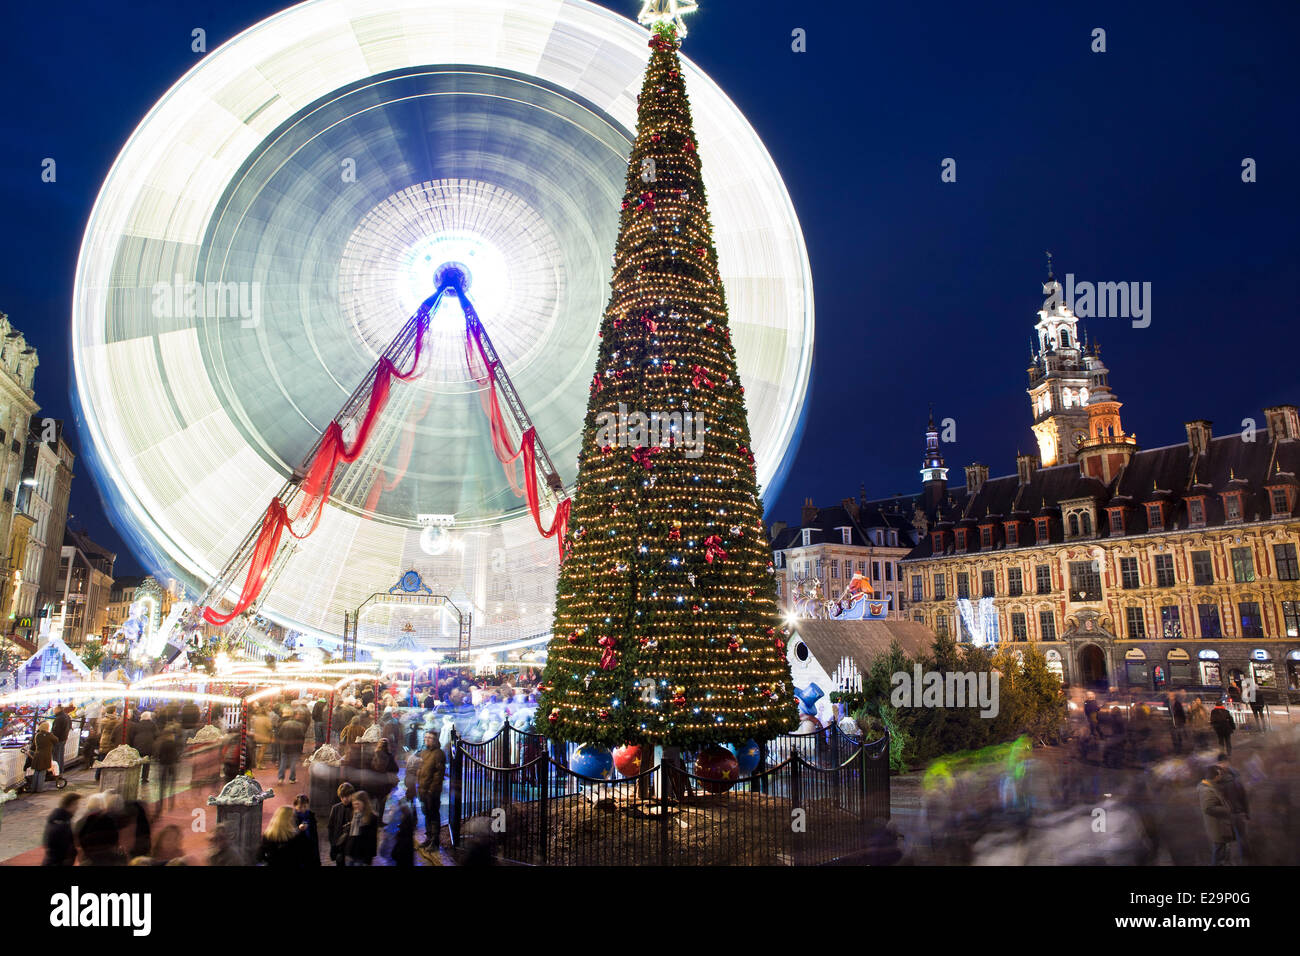 France, Nord, Lille, the great wheel installed during the Christmas season on the Place du General de Gaulle (General - Stock Image